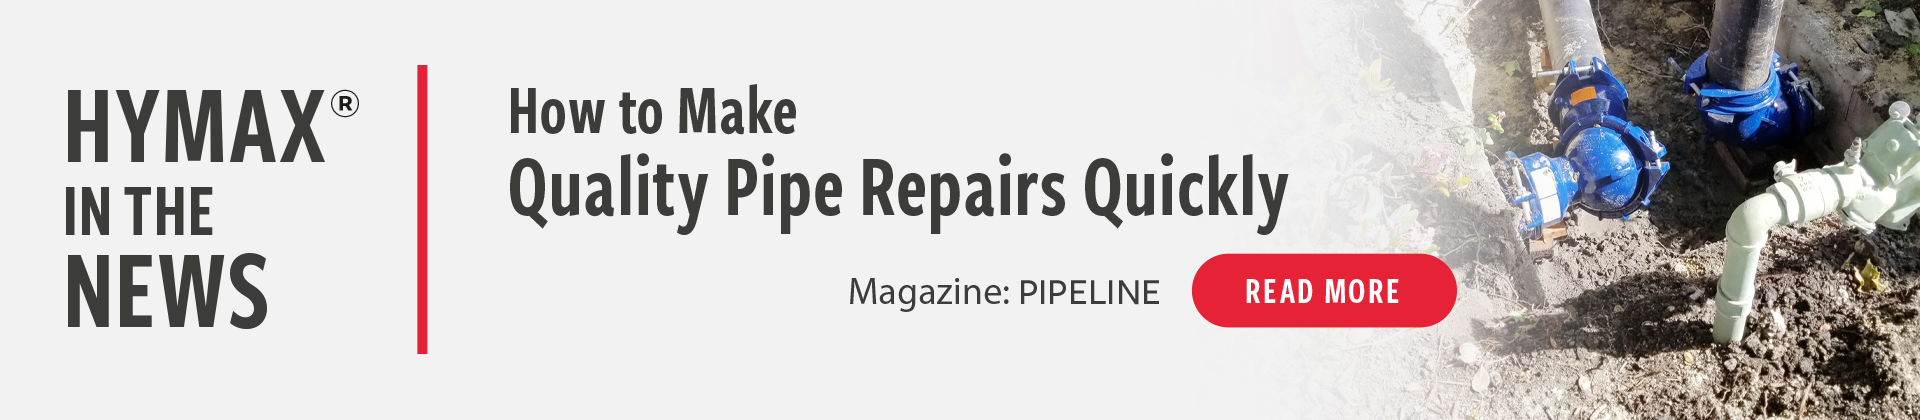 Quality-Pipe-Repairs-Quickly-NJ-Pipeline